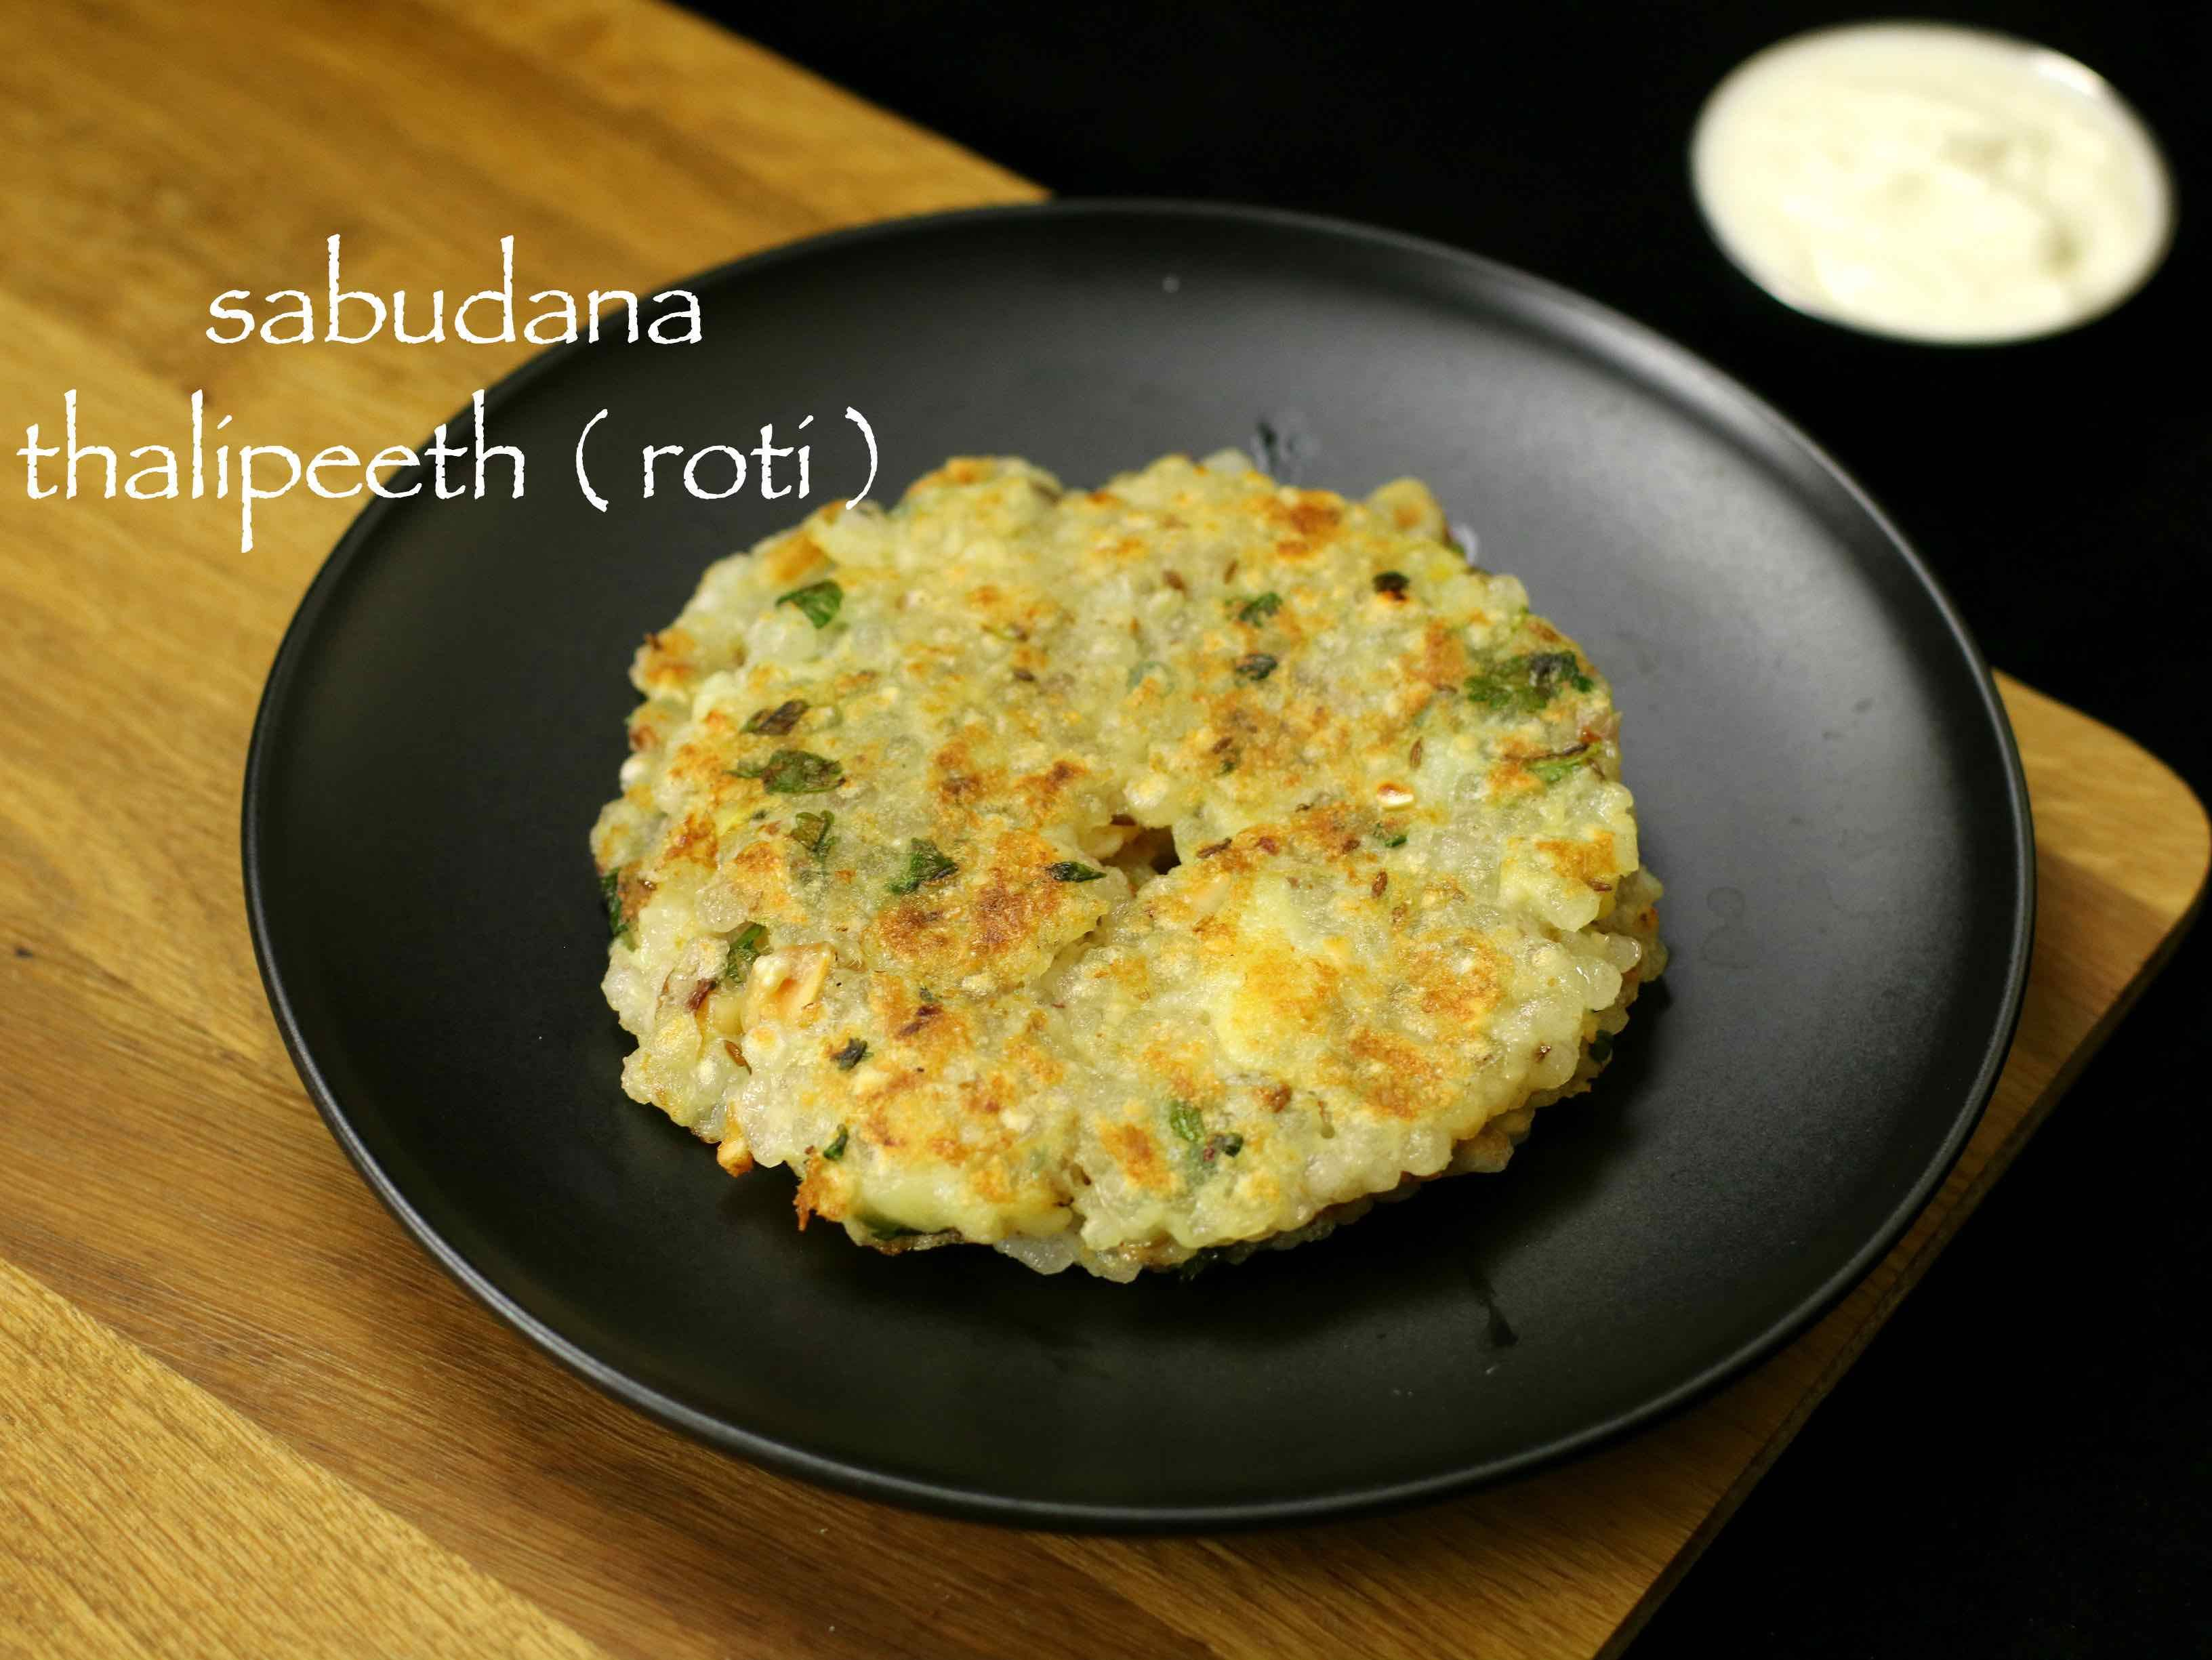 Sabudana thalipeeth recipe sabakki rotti sabudana roti with step sabudana thalipeeth recipe sabakki rotti sabudana roti with step by step photovideo indian food forumfinder Image collections